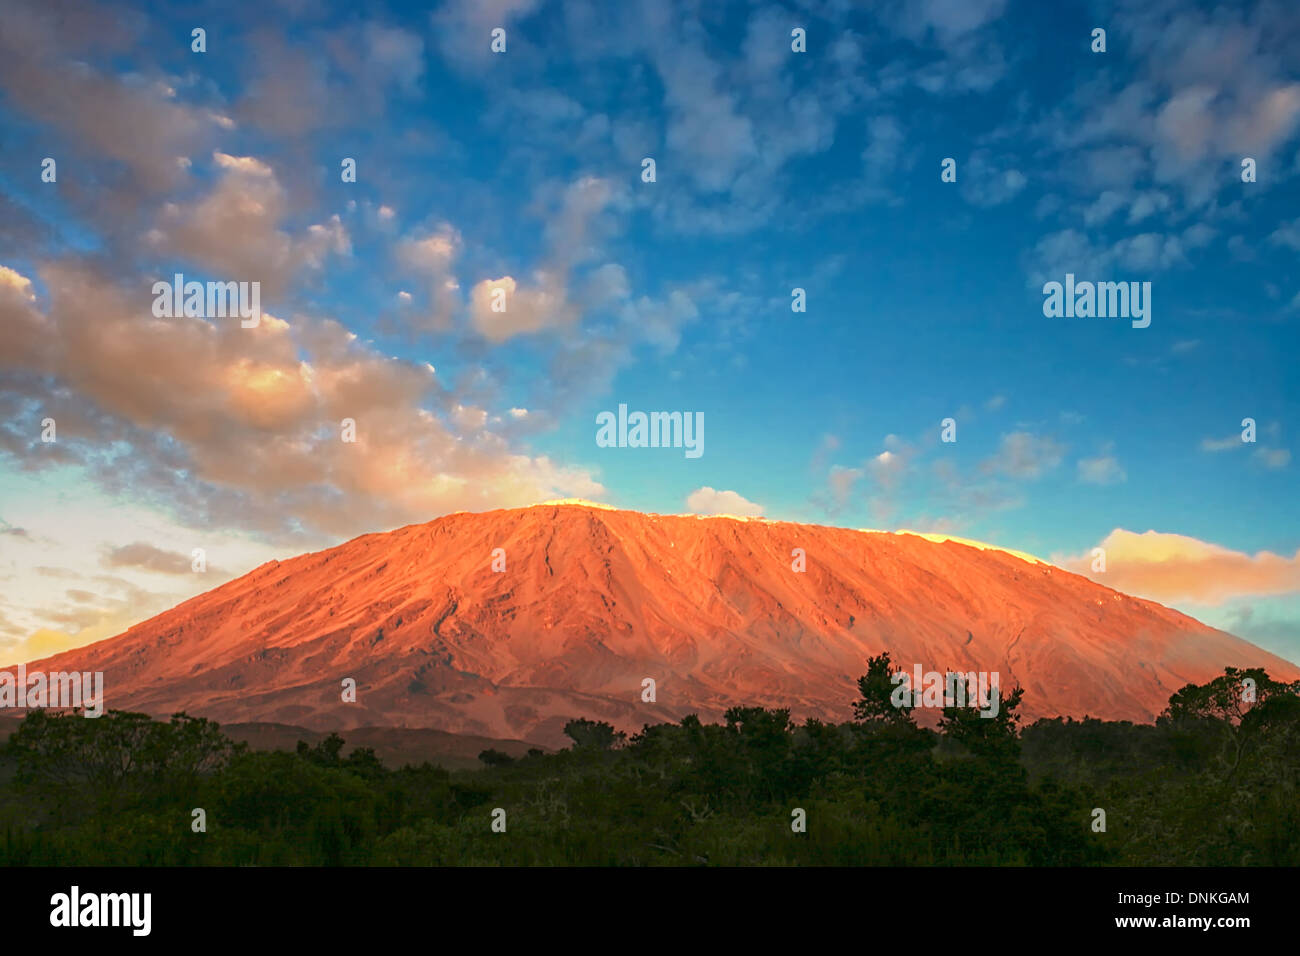 Mount Kilimanjaro in Tanzania as seen from the first stage of the Rongai route to the summit of this majestic mountain. - Stock Image